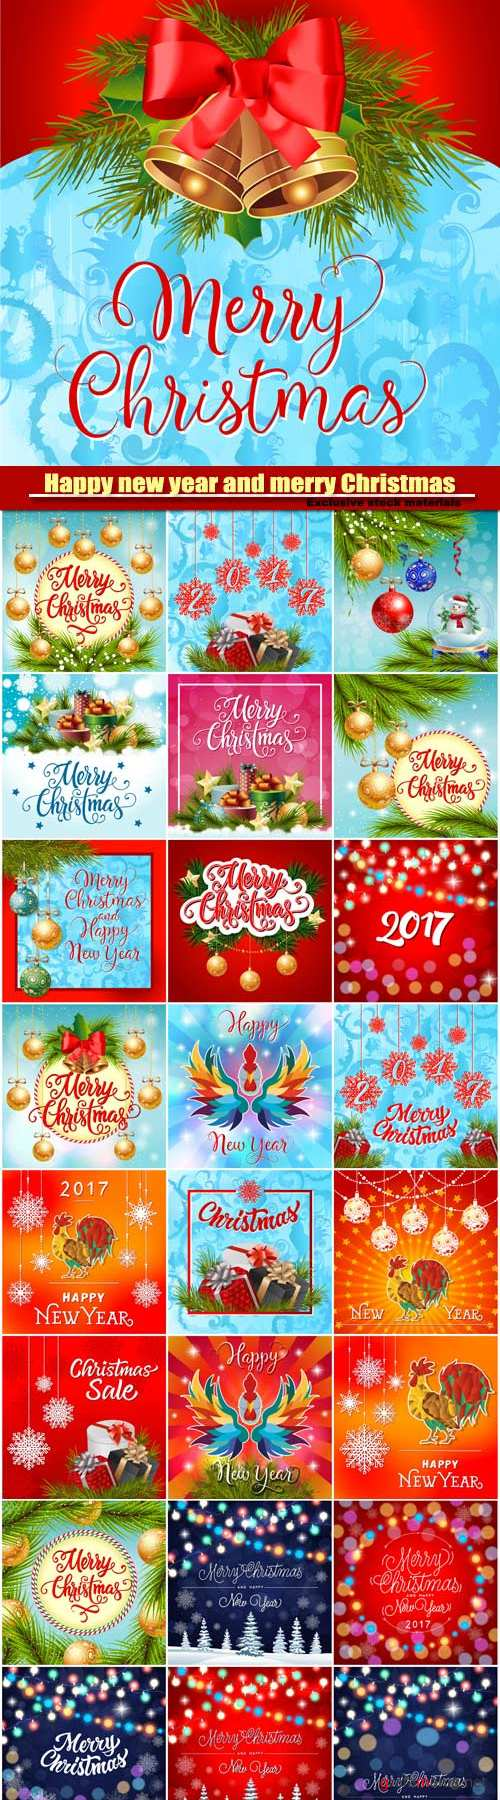 Merry Christmas and Happy New Year, decorations,Christmas balls, present boxes with bow, stars